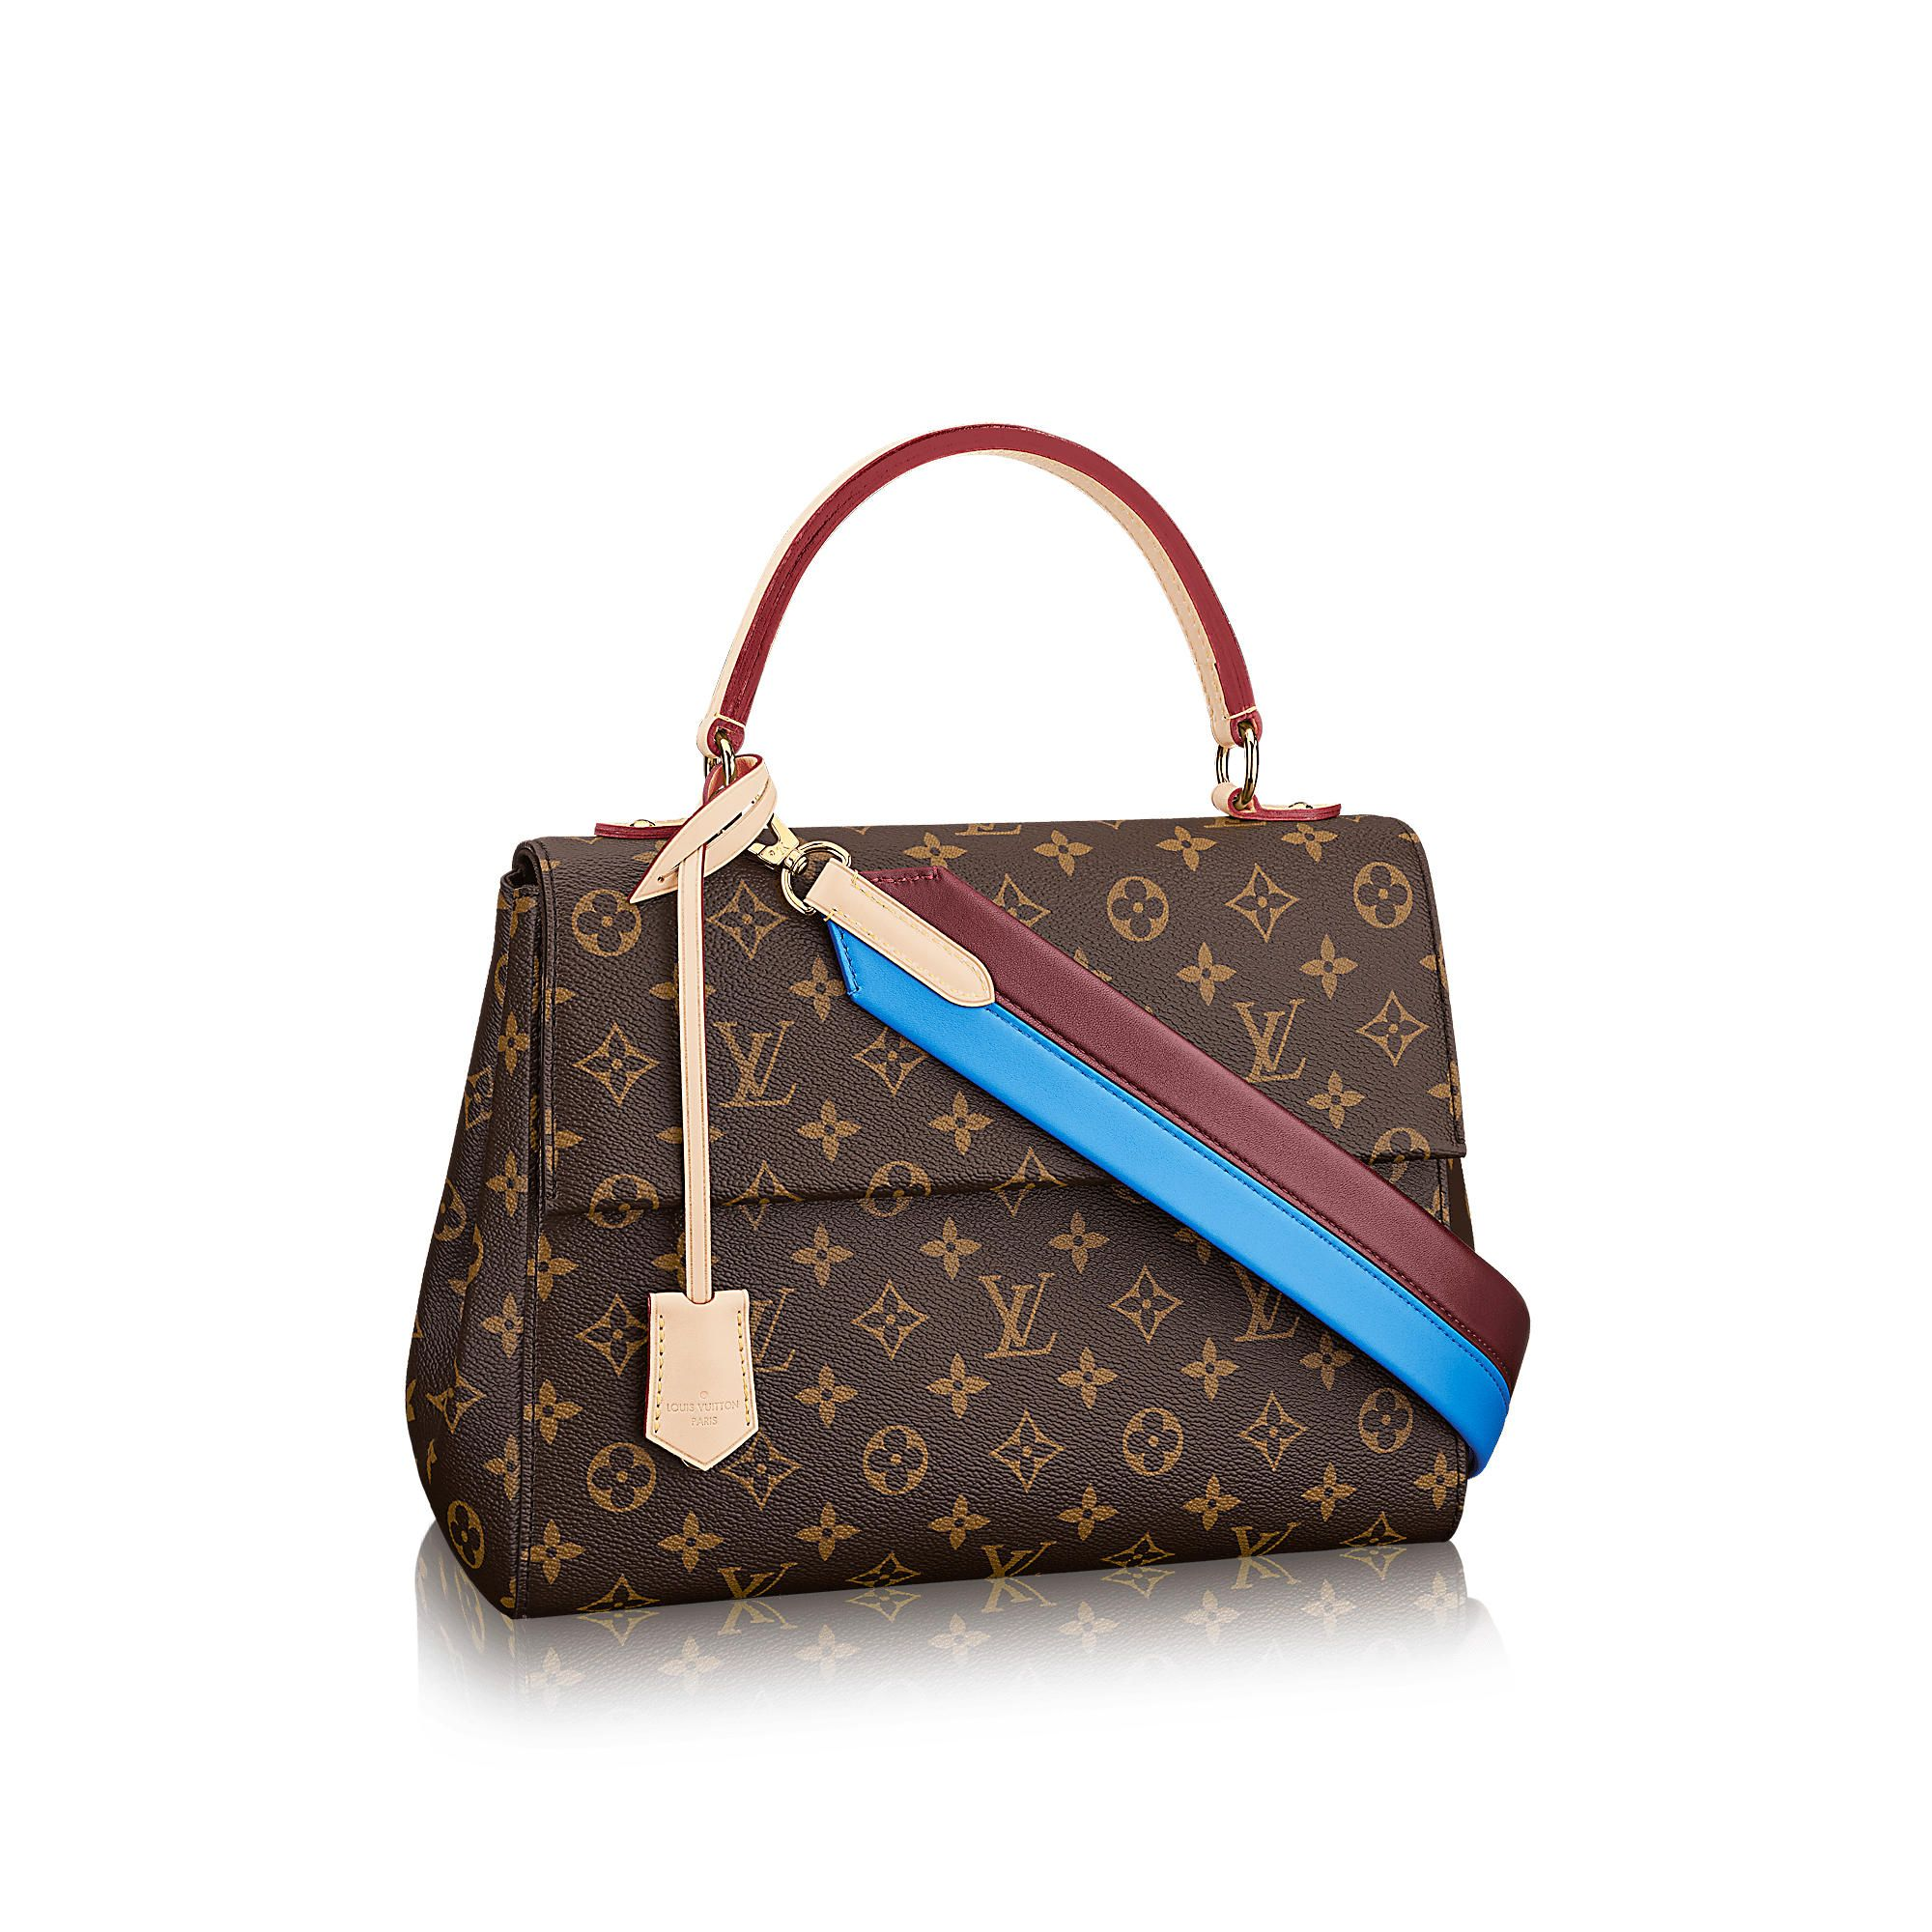 Discover Louis Vuitton Cluny Mm Via Louis Vuitton Louis Vuitton Monogram Bag Louis Vuitton Monogram Vuitton